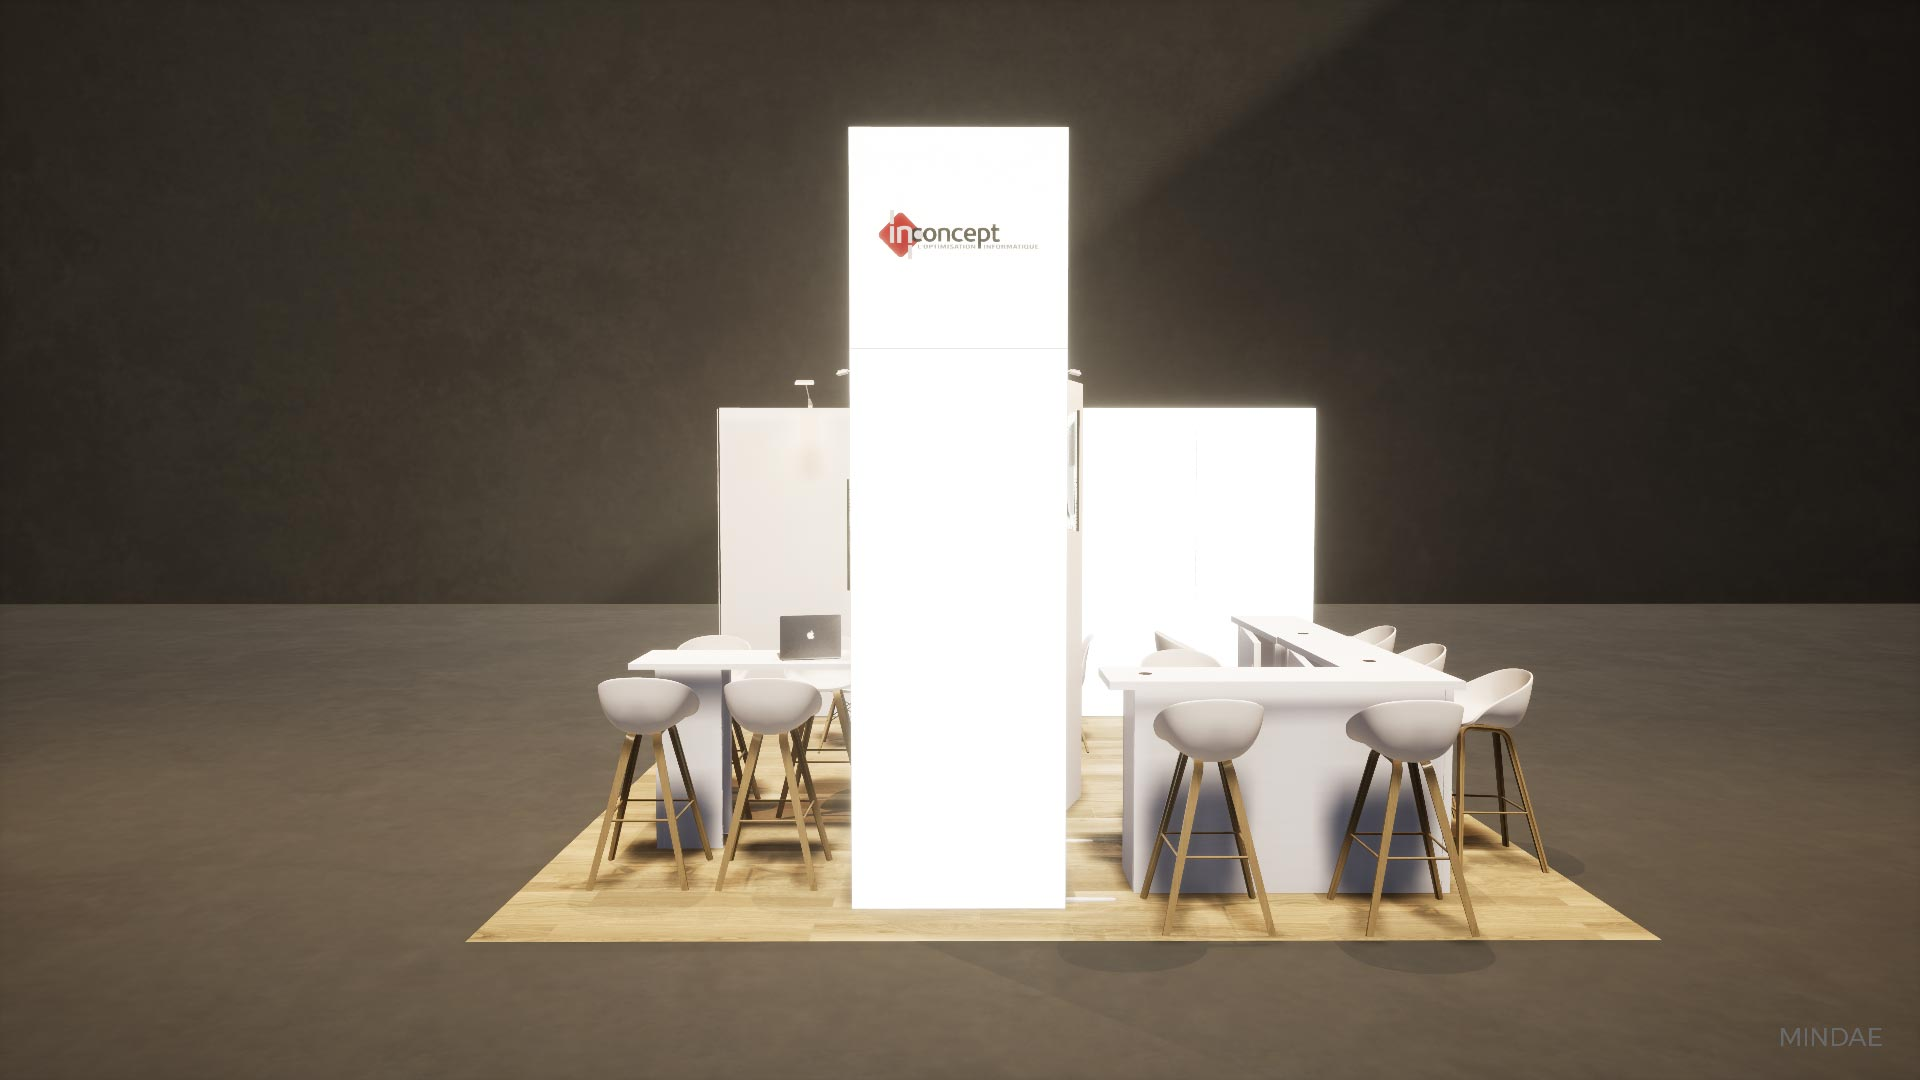 Mindae_3D_magik_expo_stand_in_concept_immobilier_evenementiel-(4)